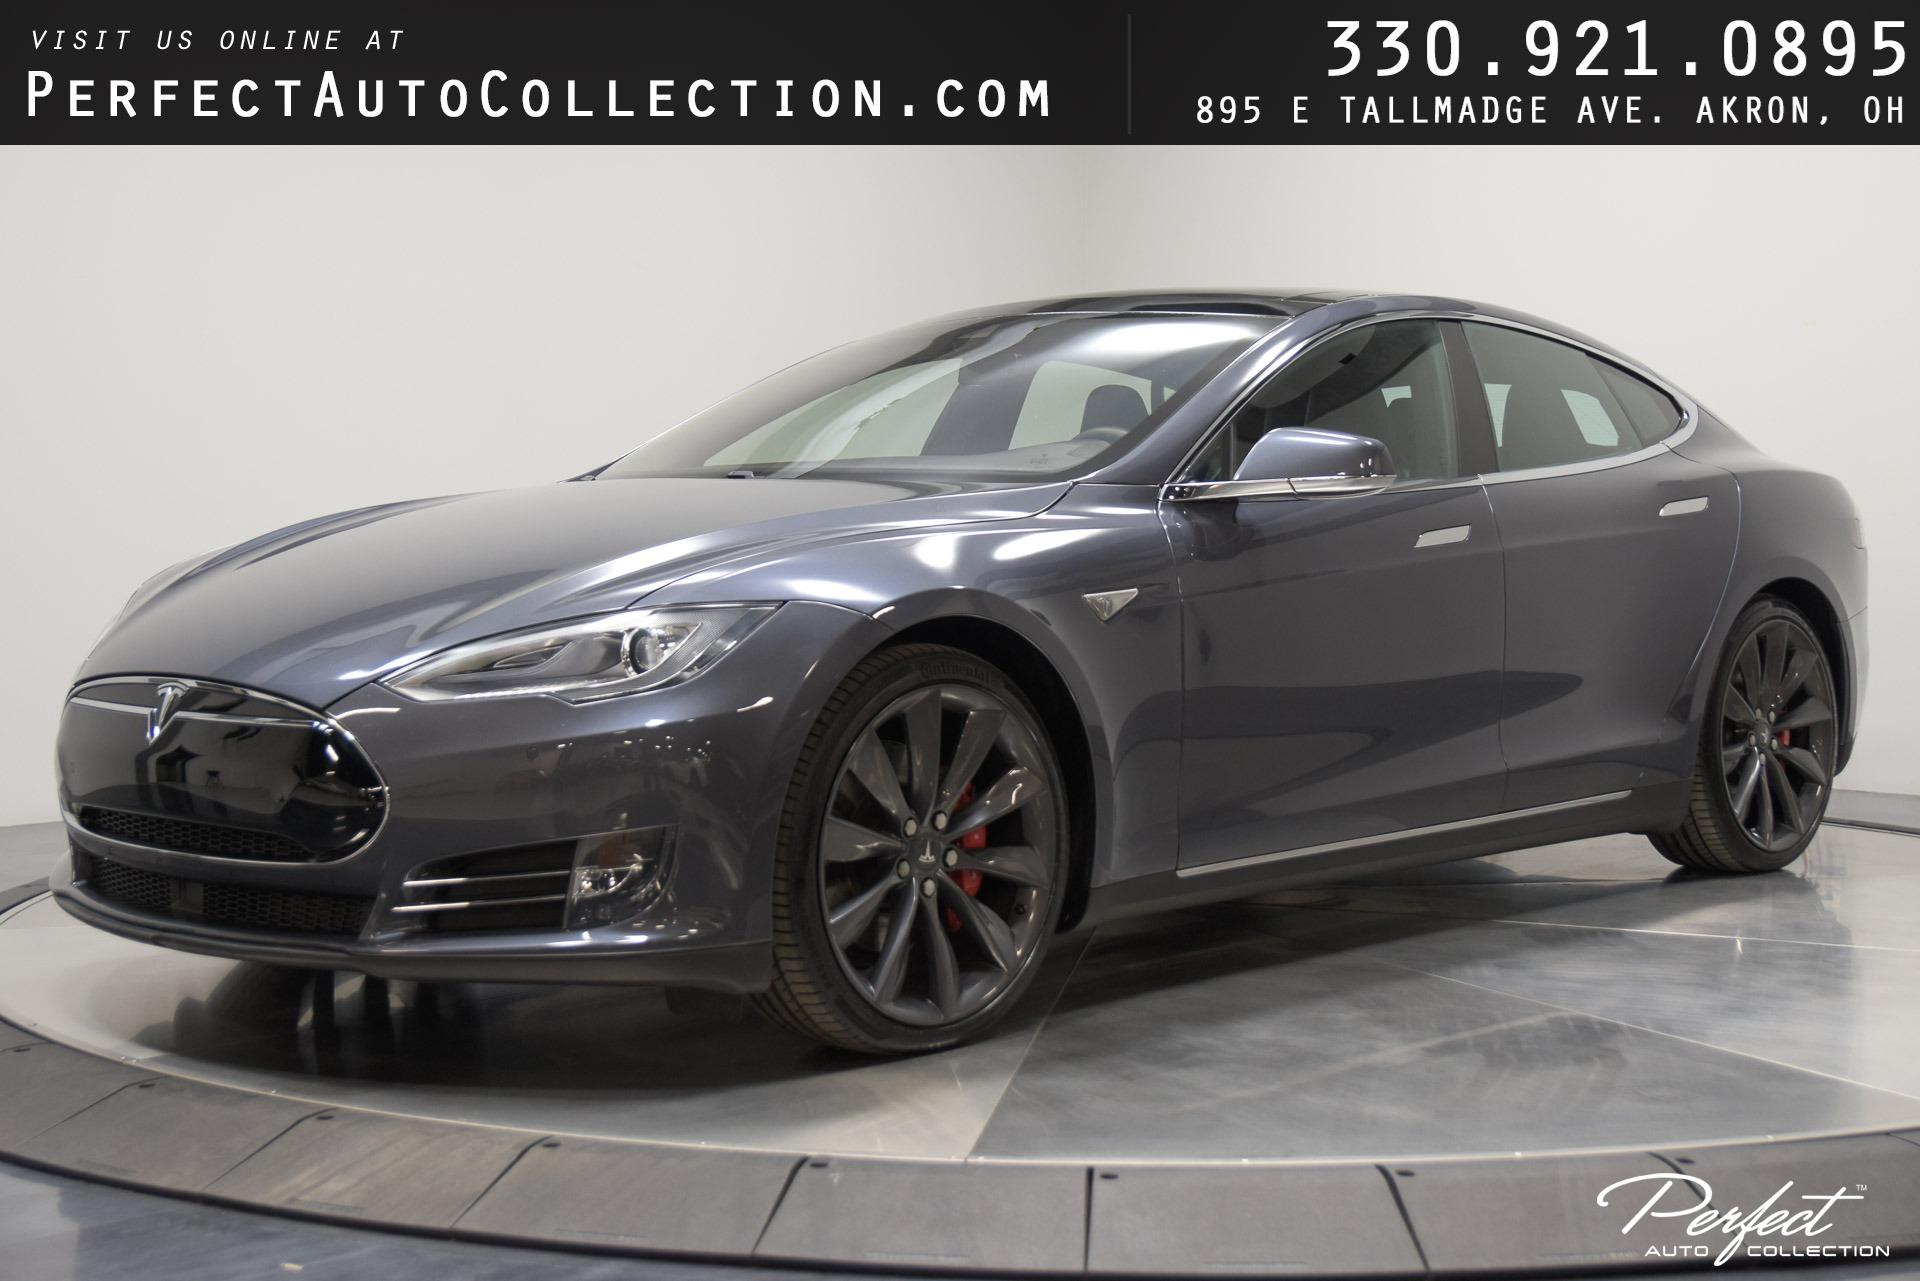 Used 2015 Tesla Model S P85D for sale $50,995 at Perfect Auto Collection in Akron OH 44310 1